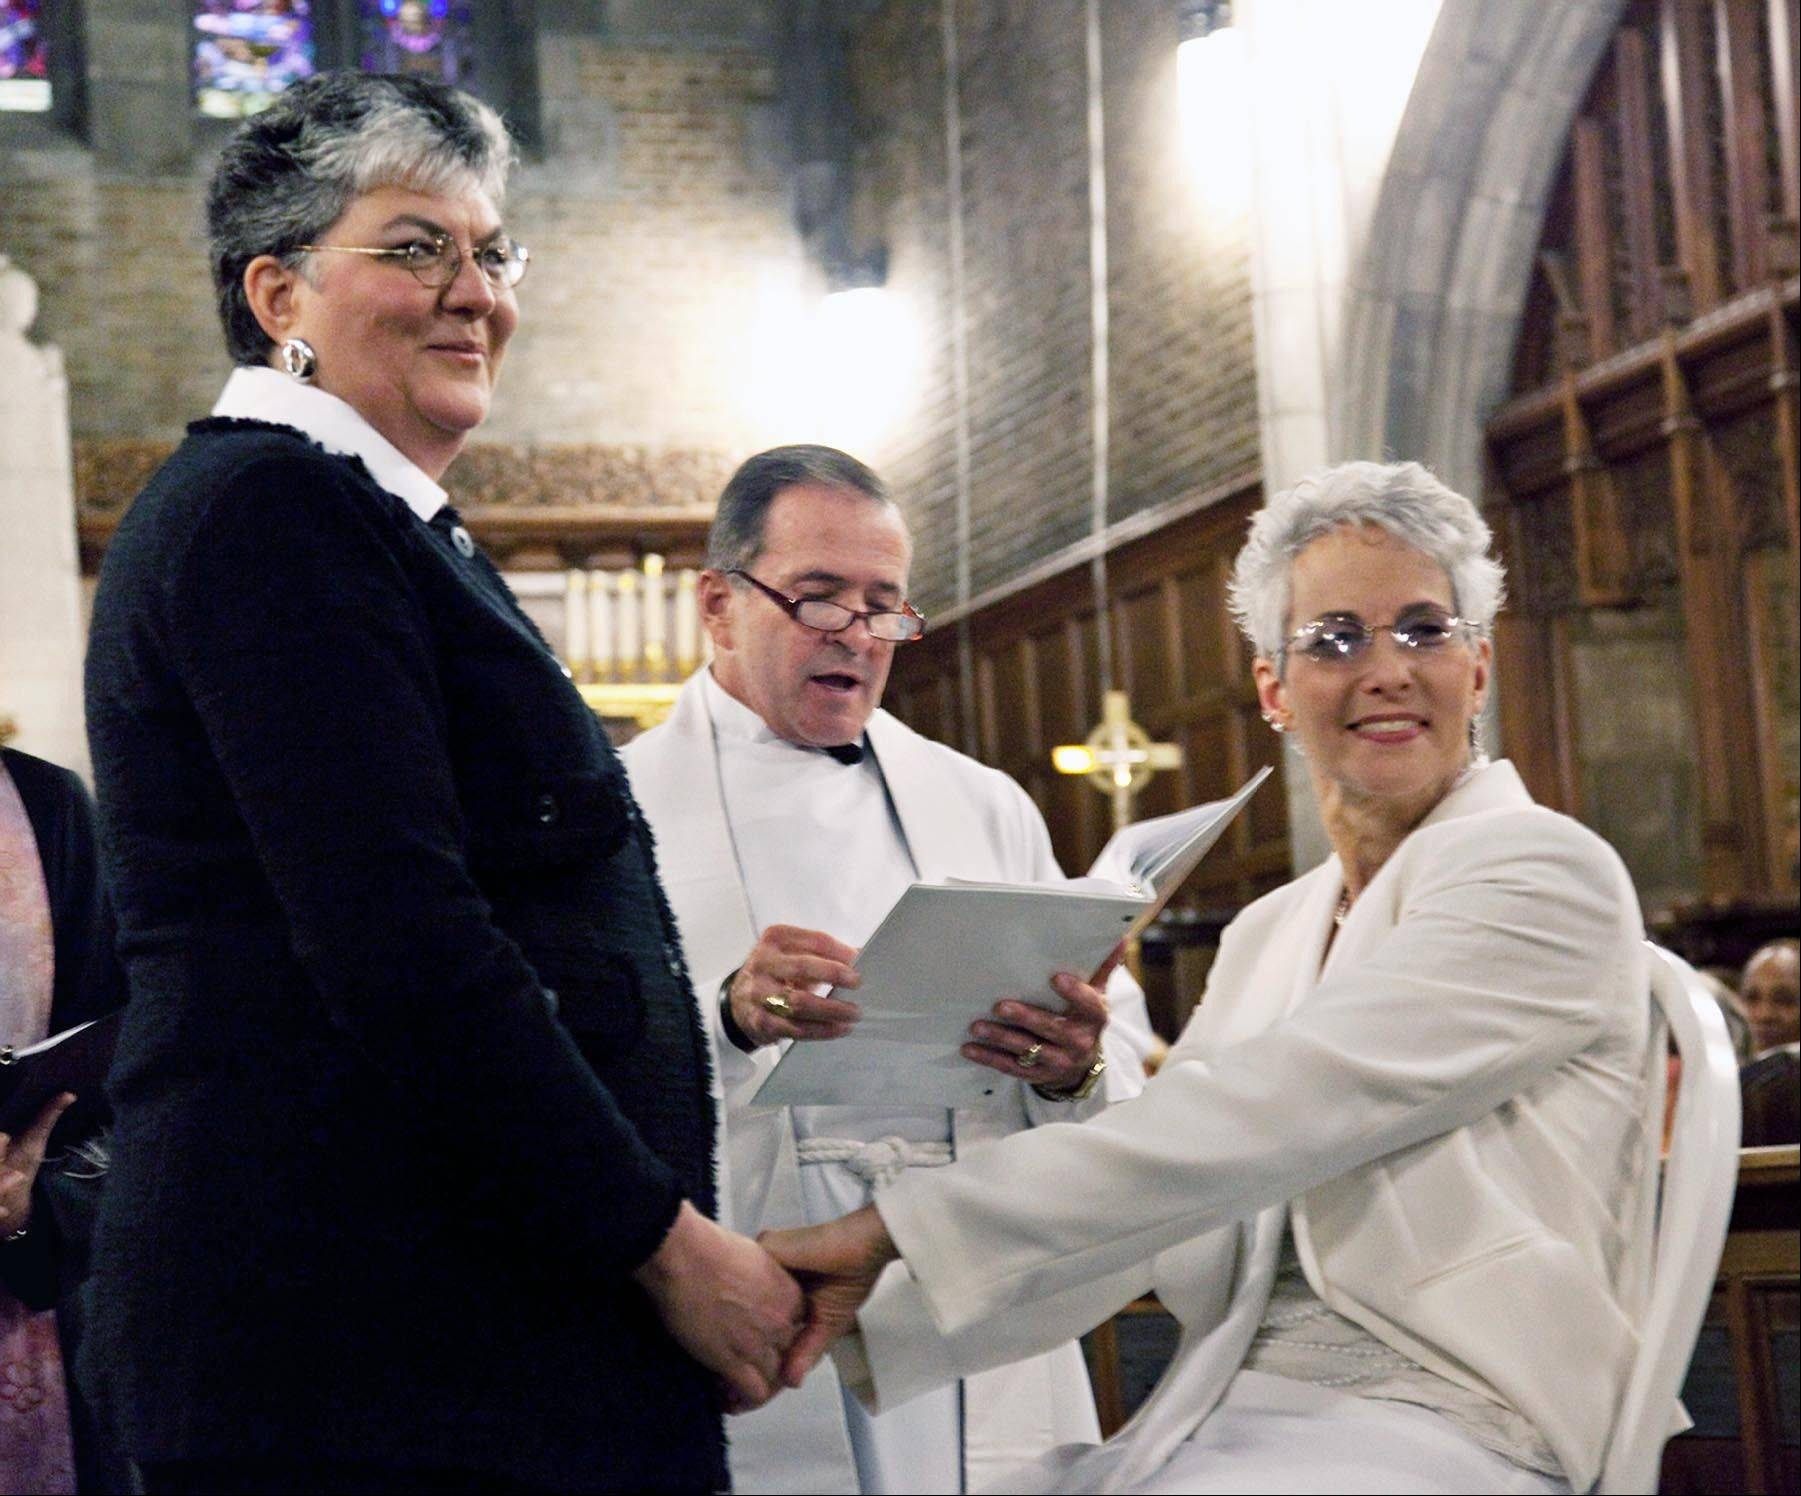 Brenda Sue Fulton, left, and Penelope Gnesin, hold hands Saturday while exchanging wedding vows at the U.S. Military Academy at West Point, N.Y.